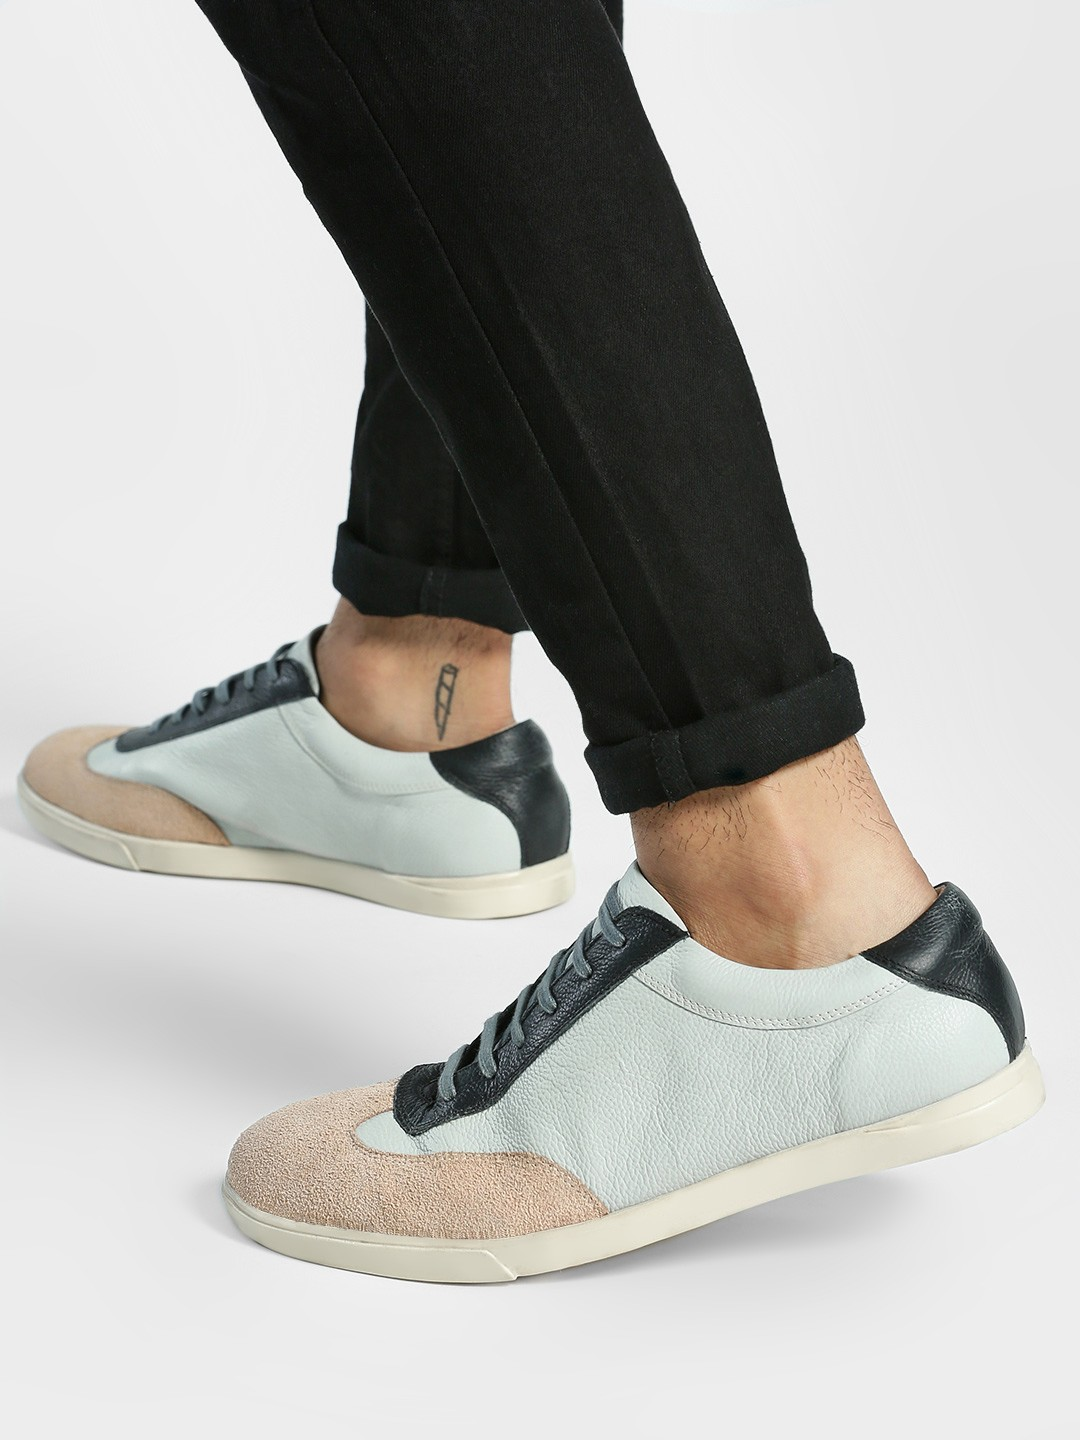 YOHO Multi Suede Panel Lace-Up Leather Sneakers 1